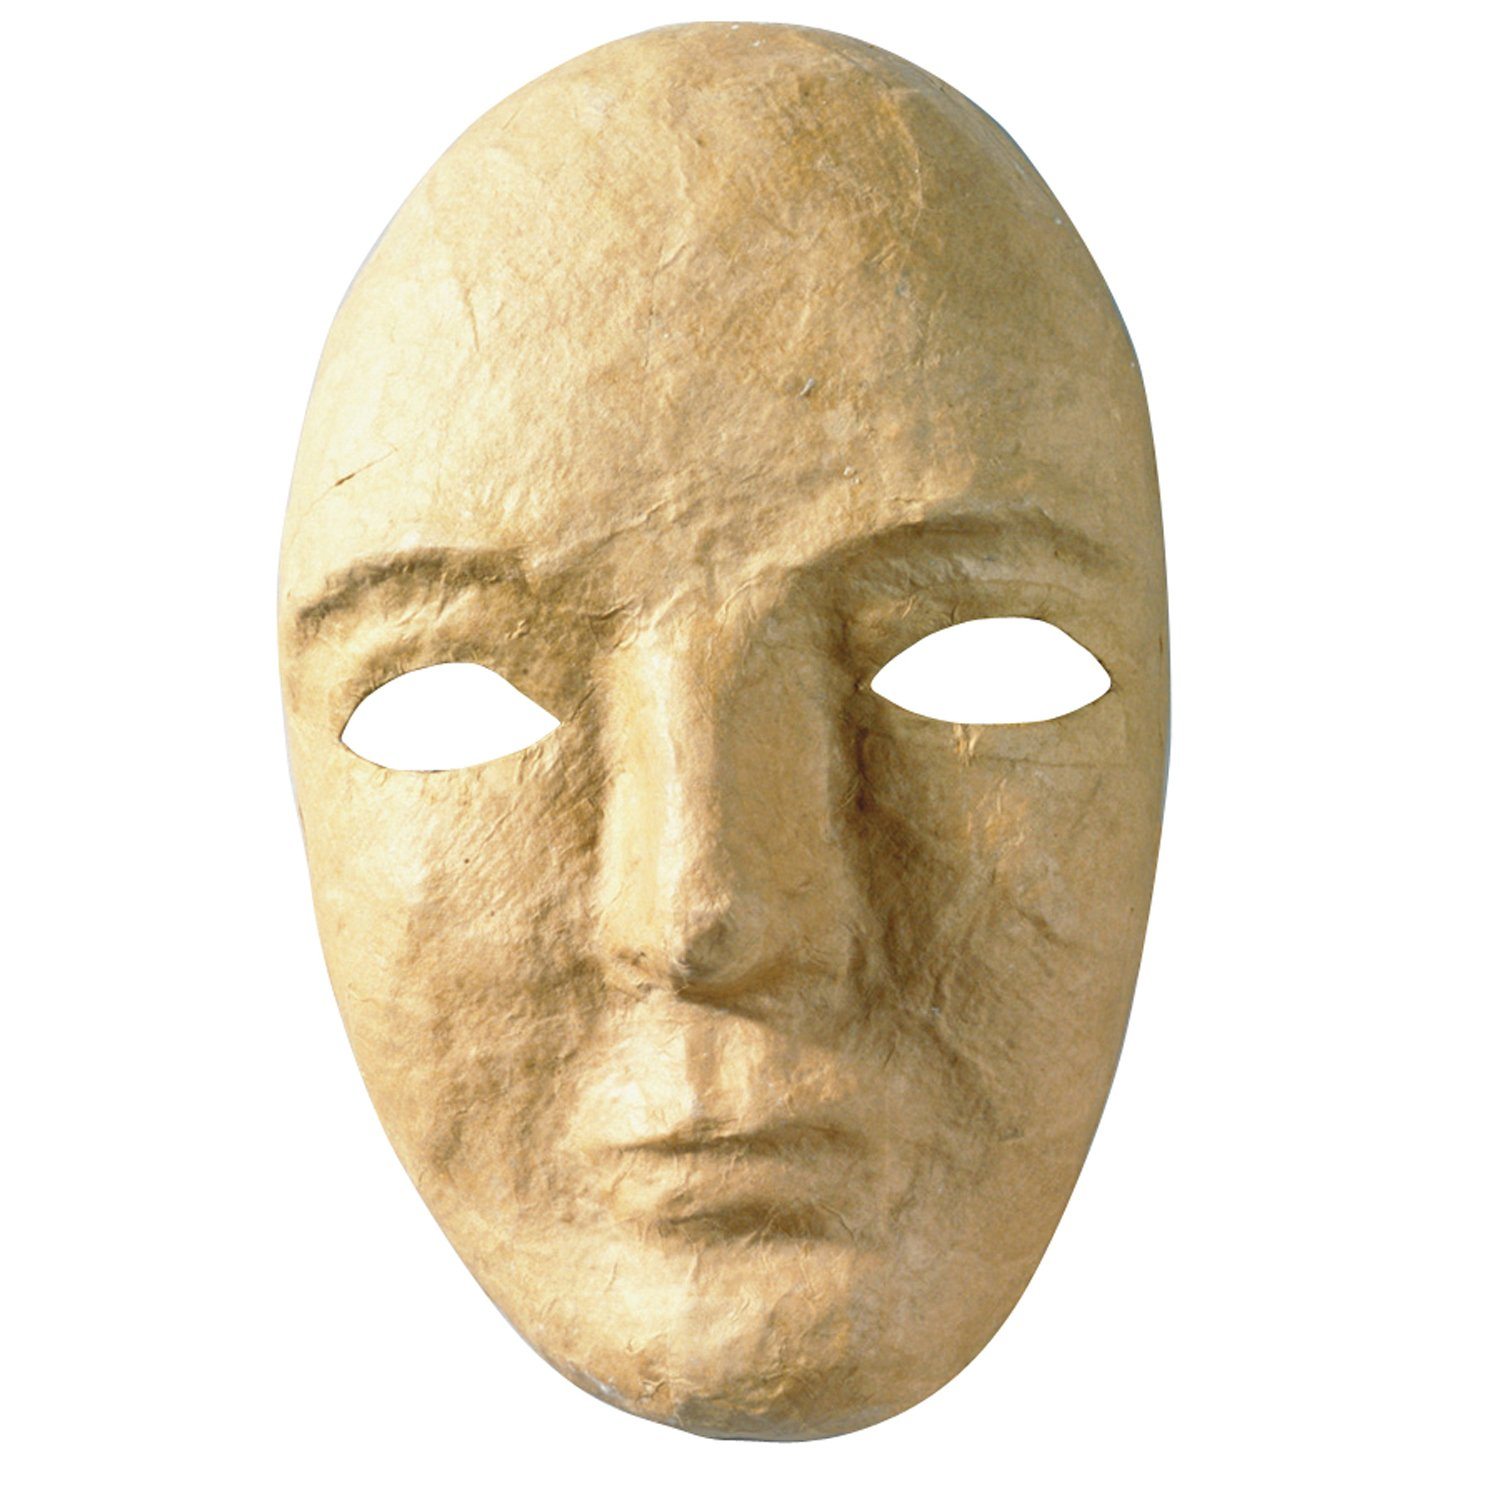 Creativity Street Papier Maché Mask, 8'' x 5.25'', Pack of 12